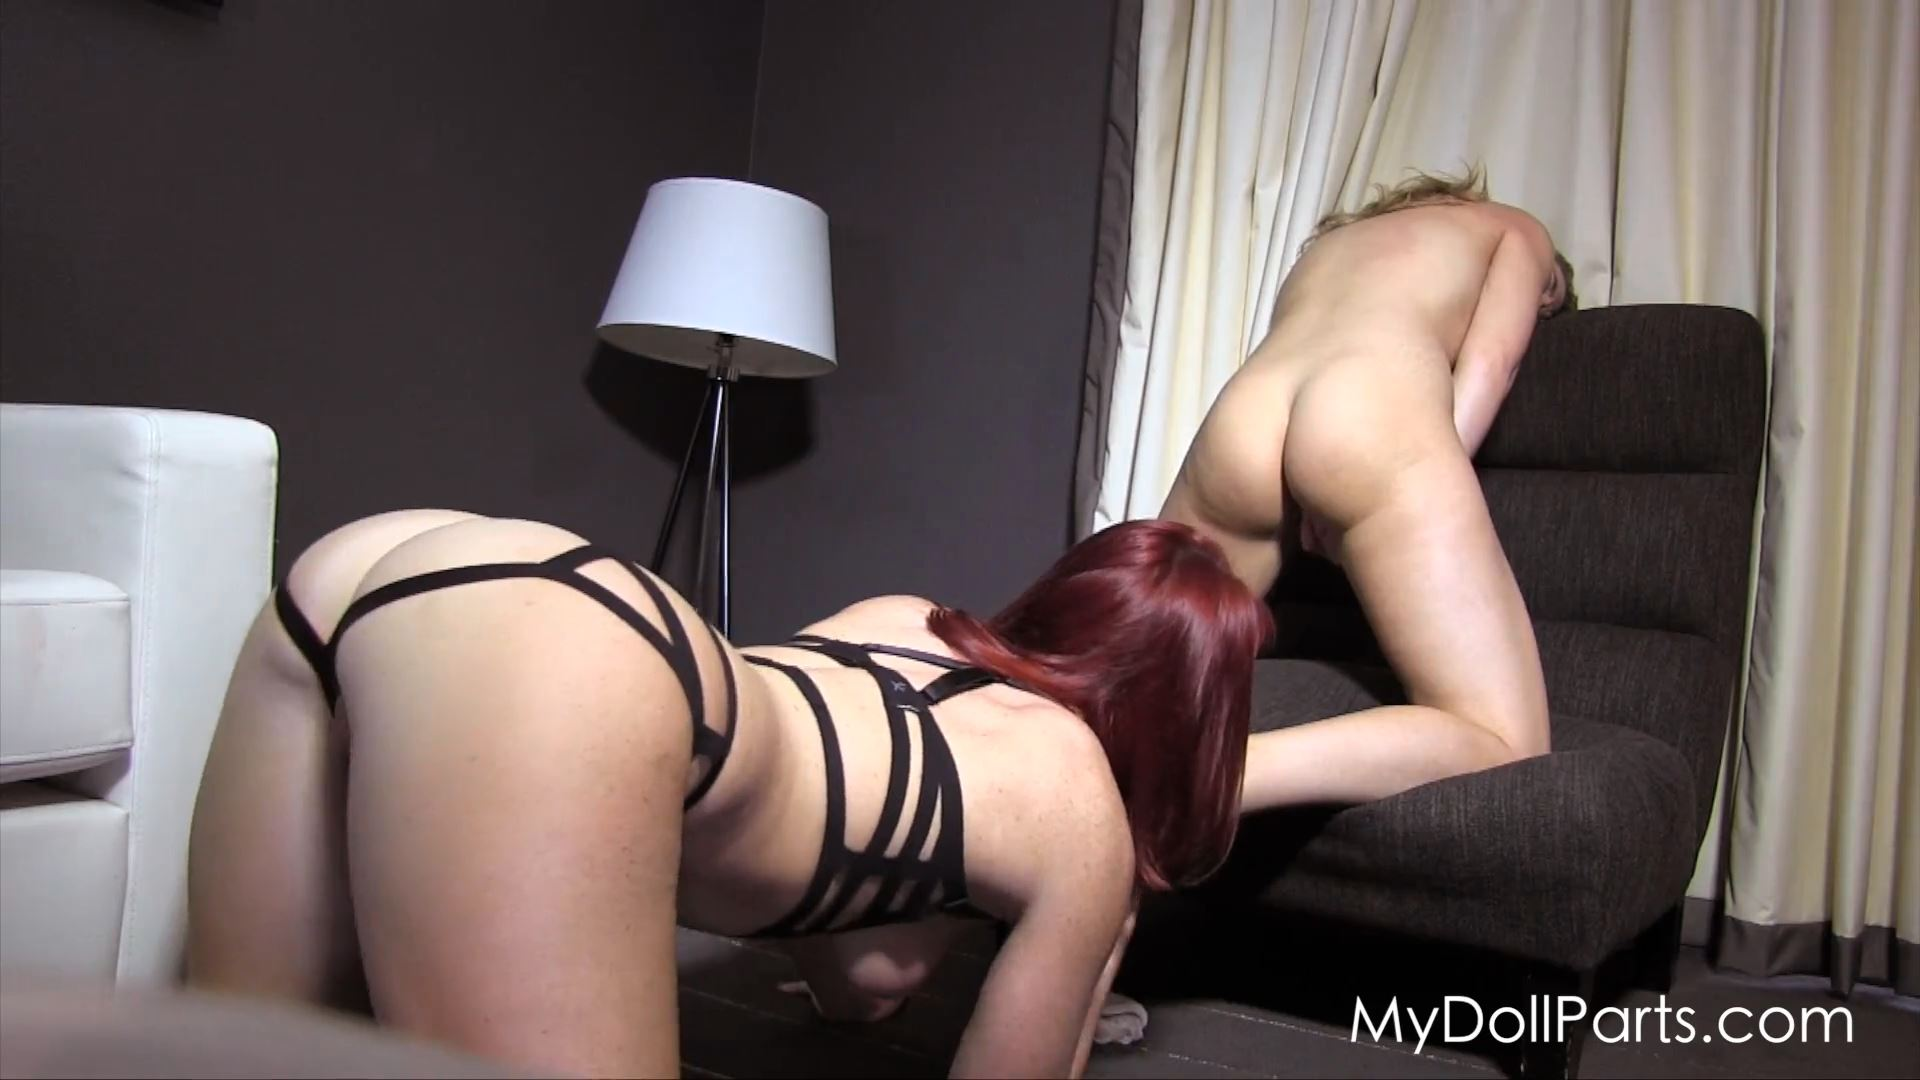 Ashlynn Archer, Sophia Locke In Scene: Worshiping Ashlynn - MYDOLLPARTS - FULL HD/1080p/MP4